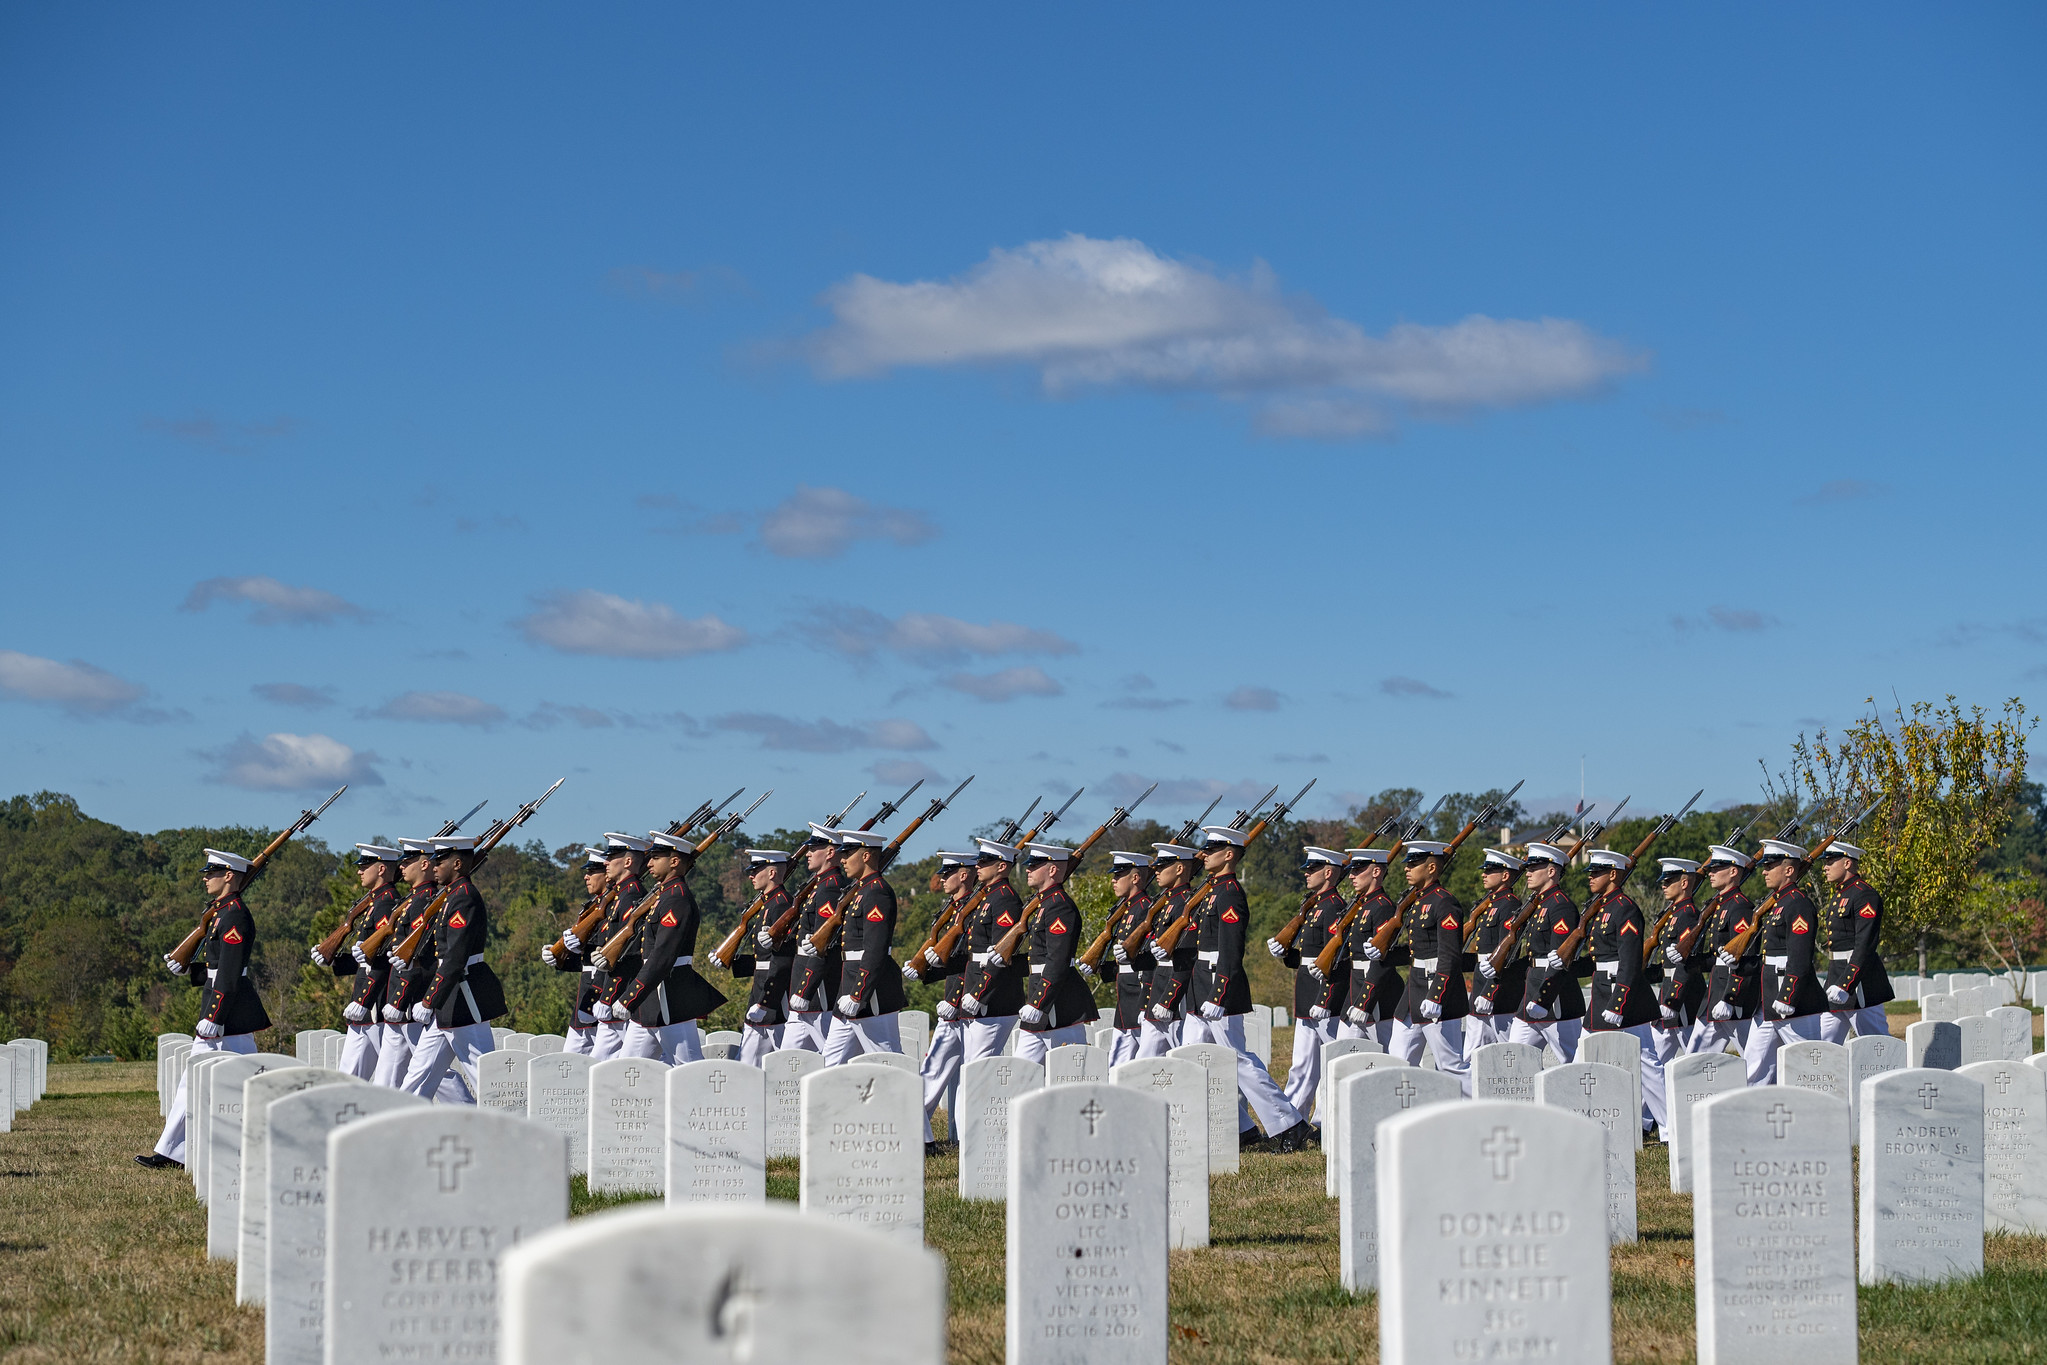 Uniformed Marines march at a military funeral, among gravesites at Arlington National Cemetery